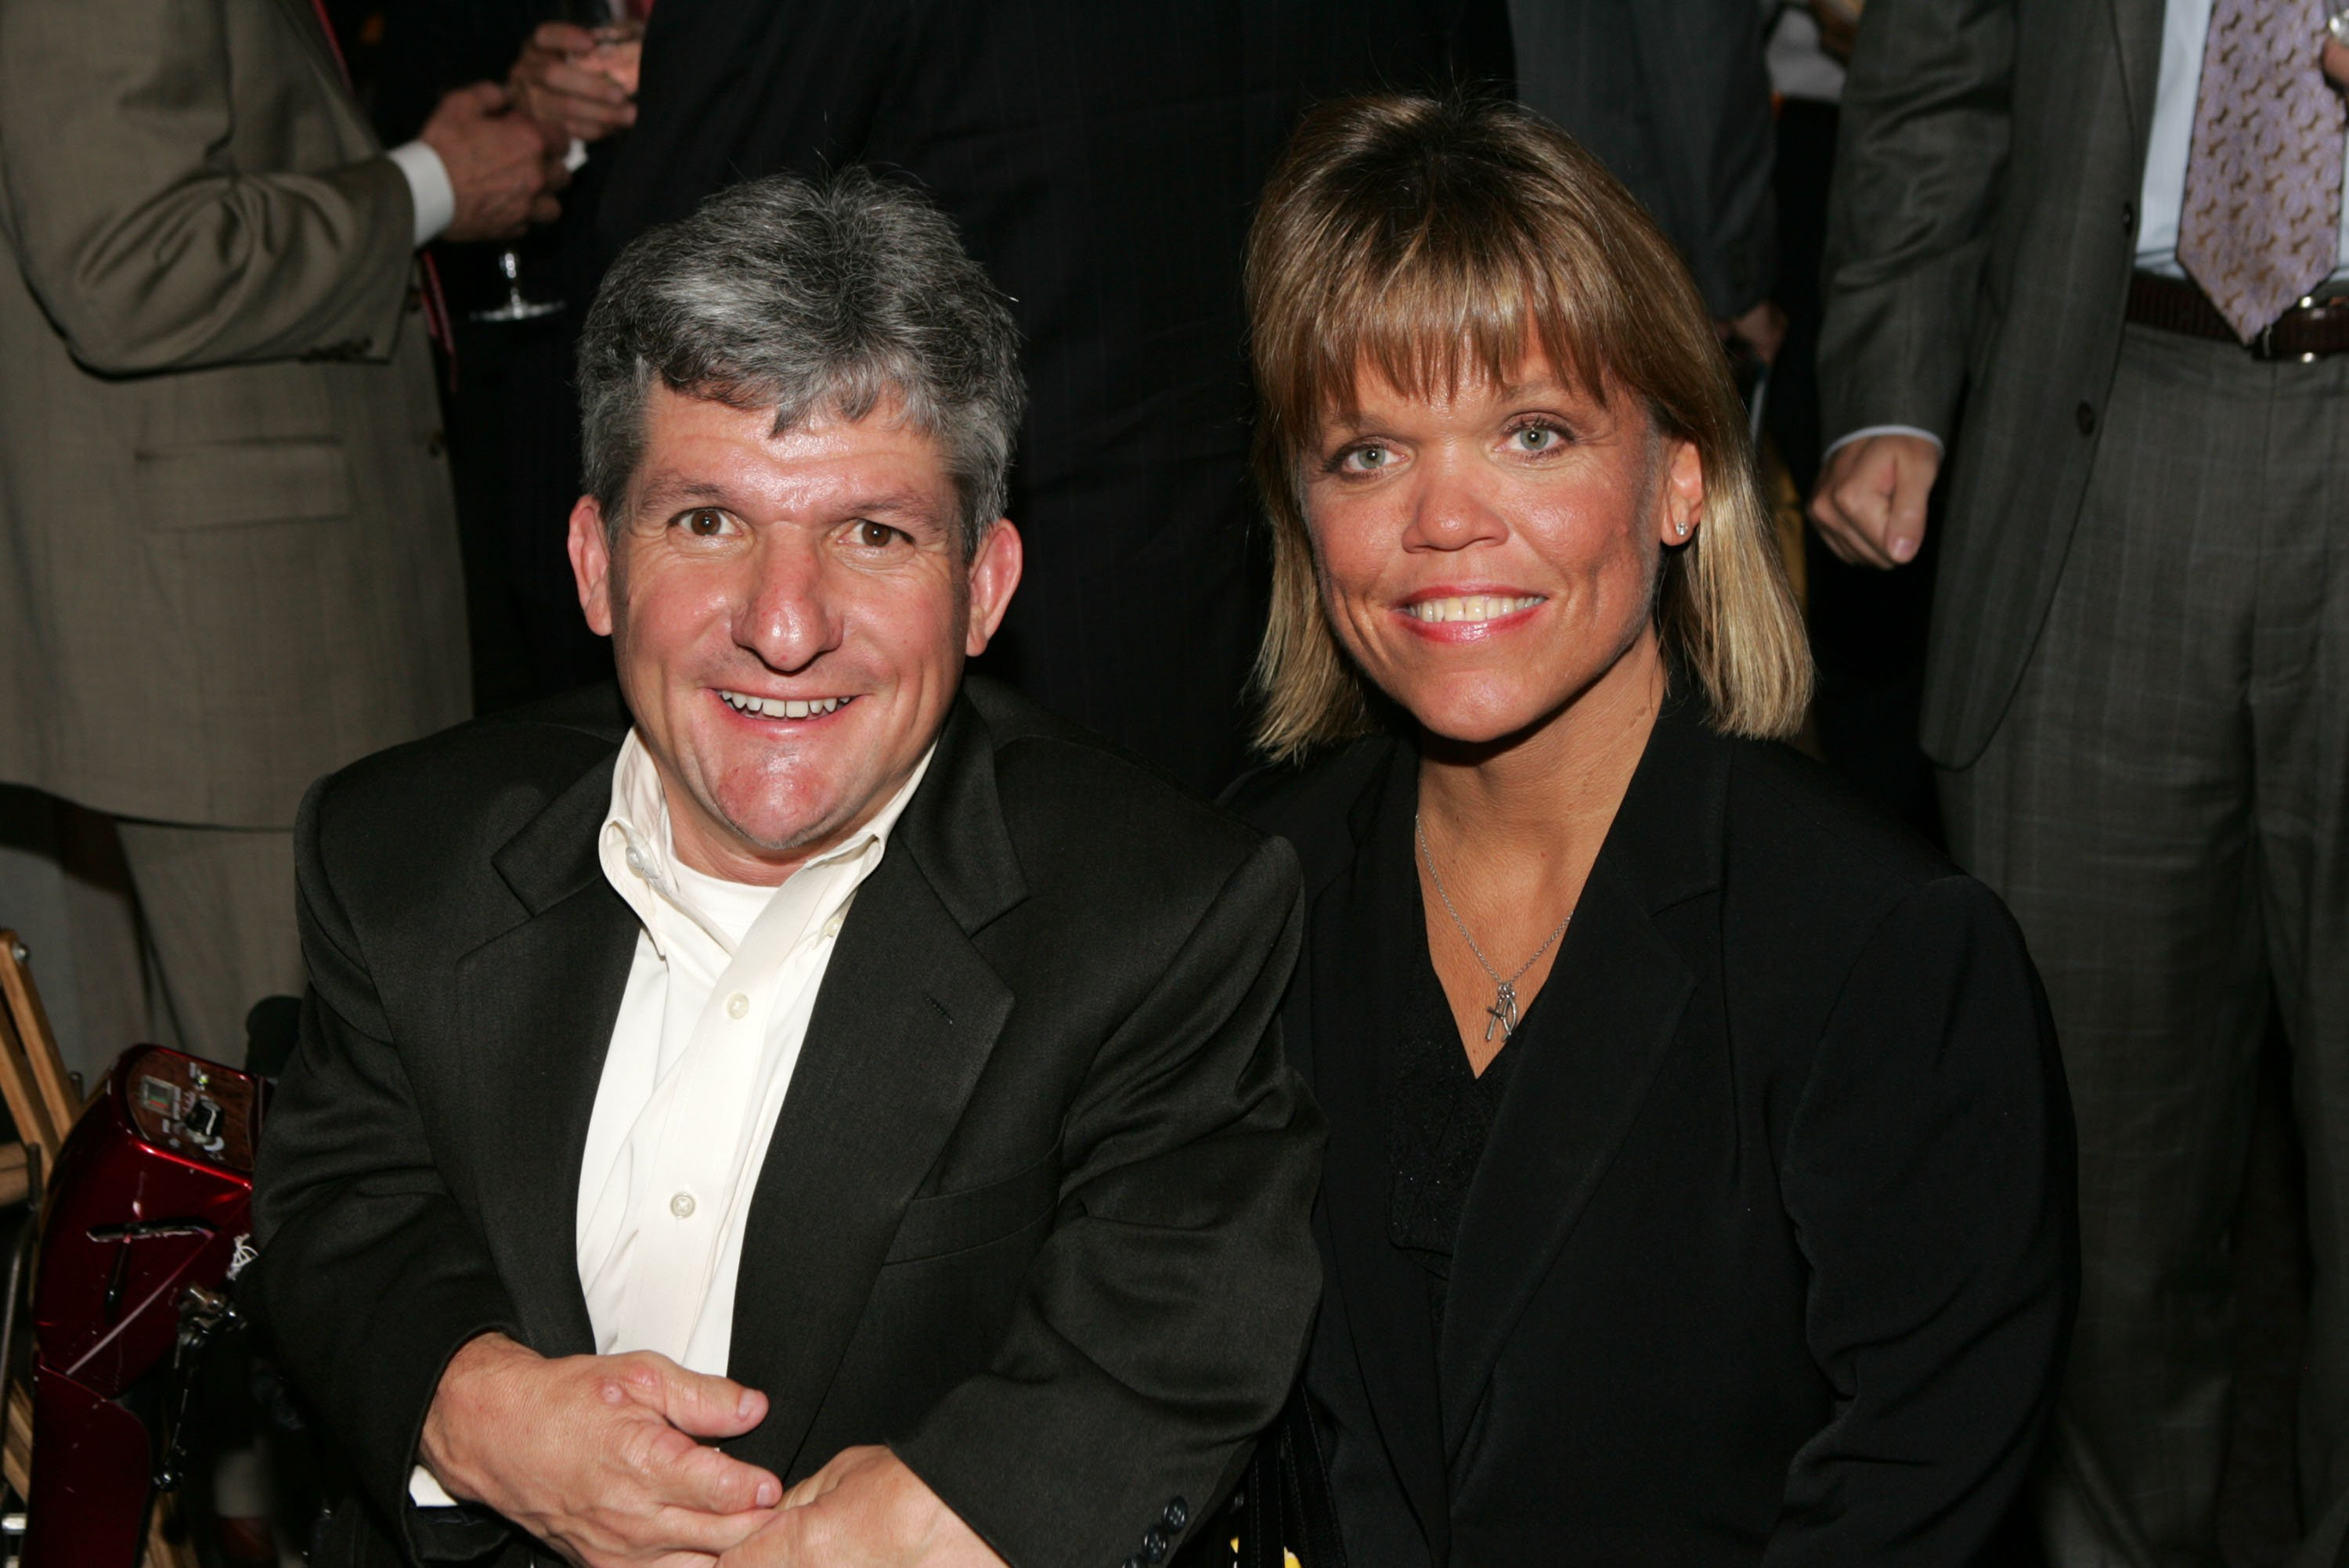 Matthew Roloff and Amy Roloff speak at the Discovery Upfront event at Jazz at Lincoln Center on April 23, 2008 | Photo: Getty Images